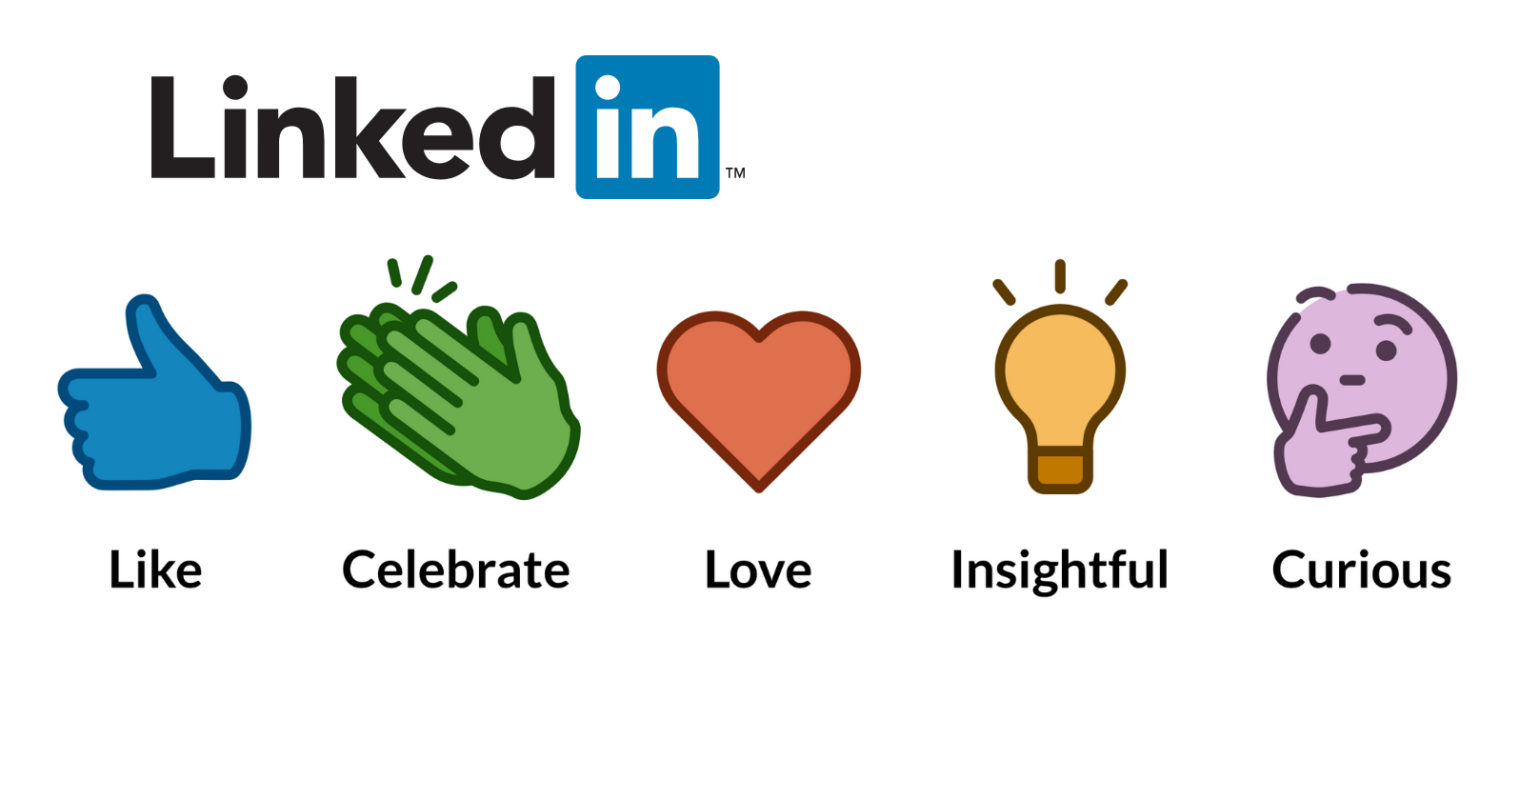 LinkedIn Aims to Boost Engagement With a Range of Reactions to Posts